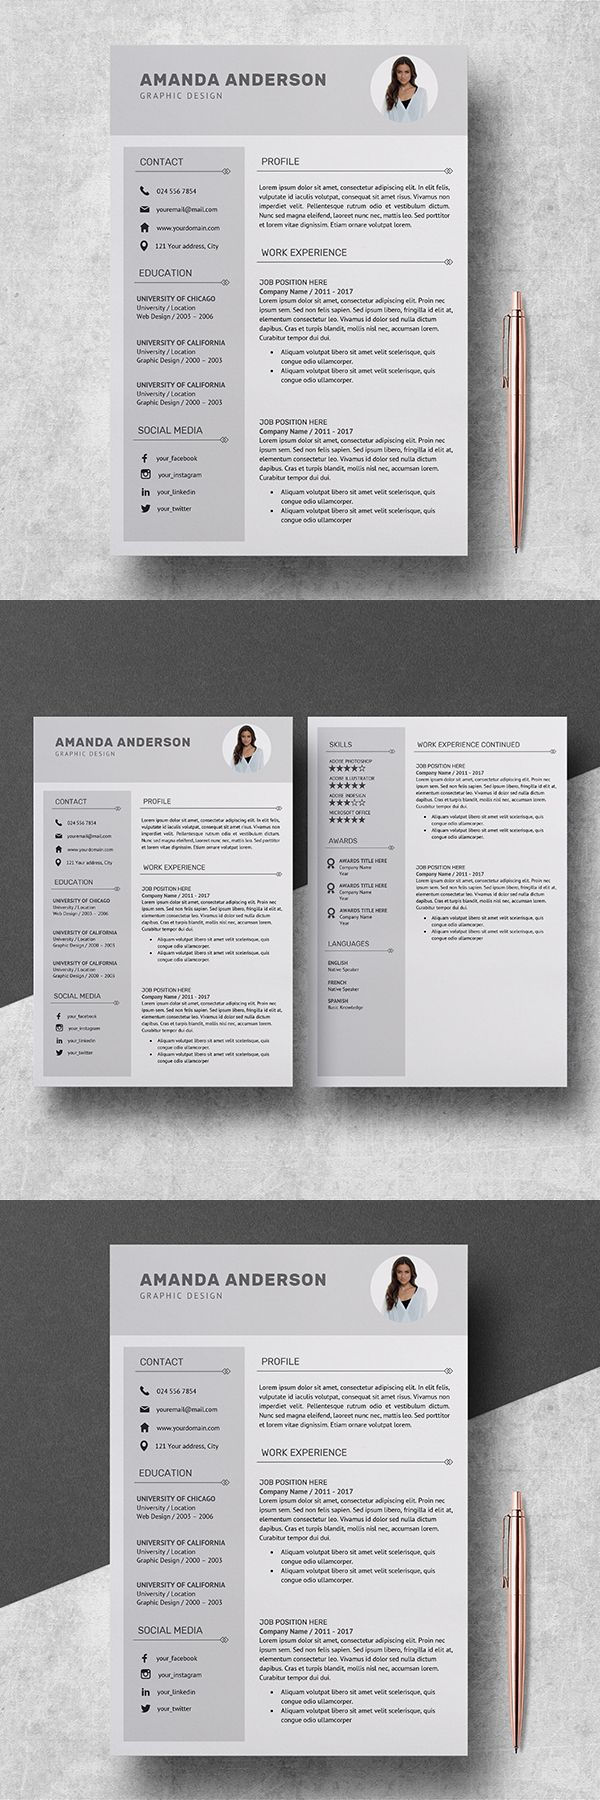 Professional Resume Template with Photo Resume Template